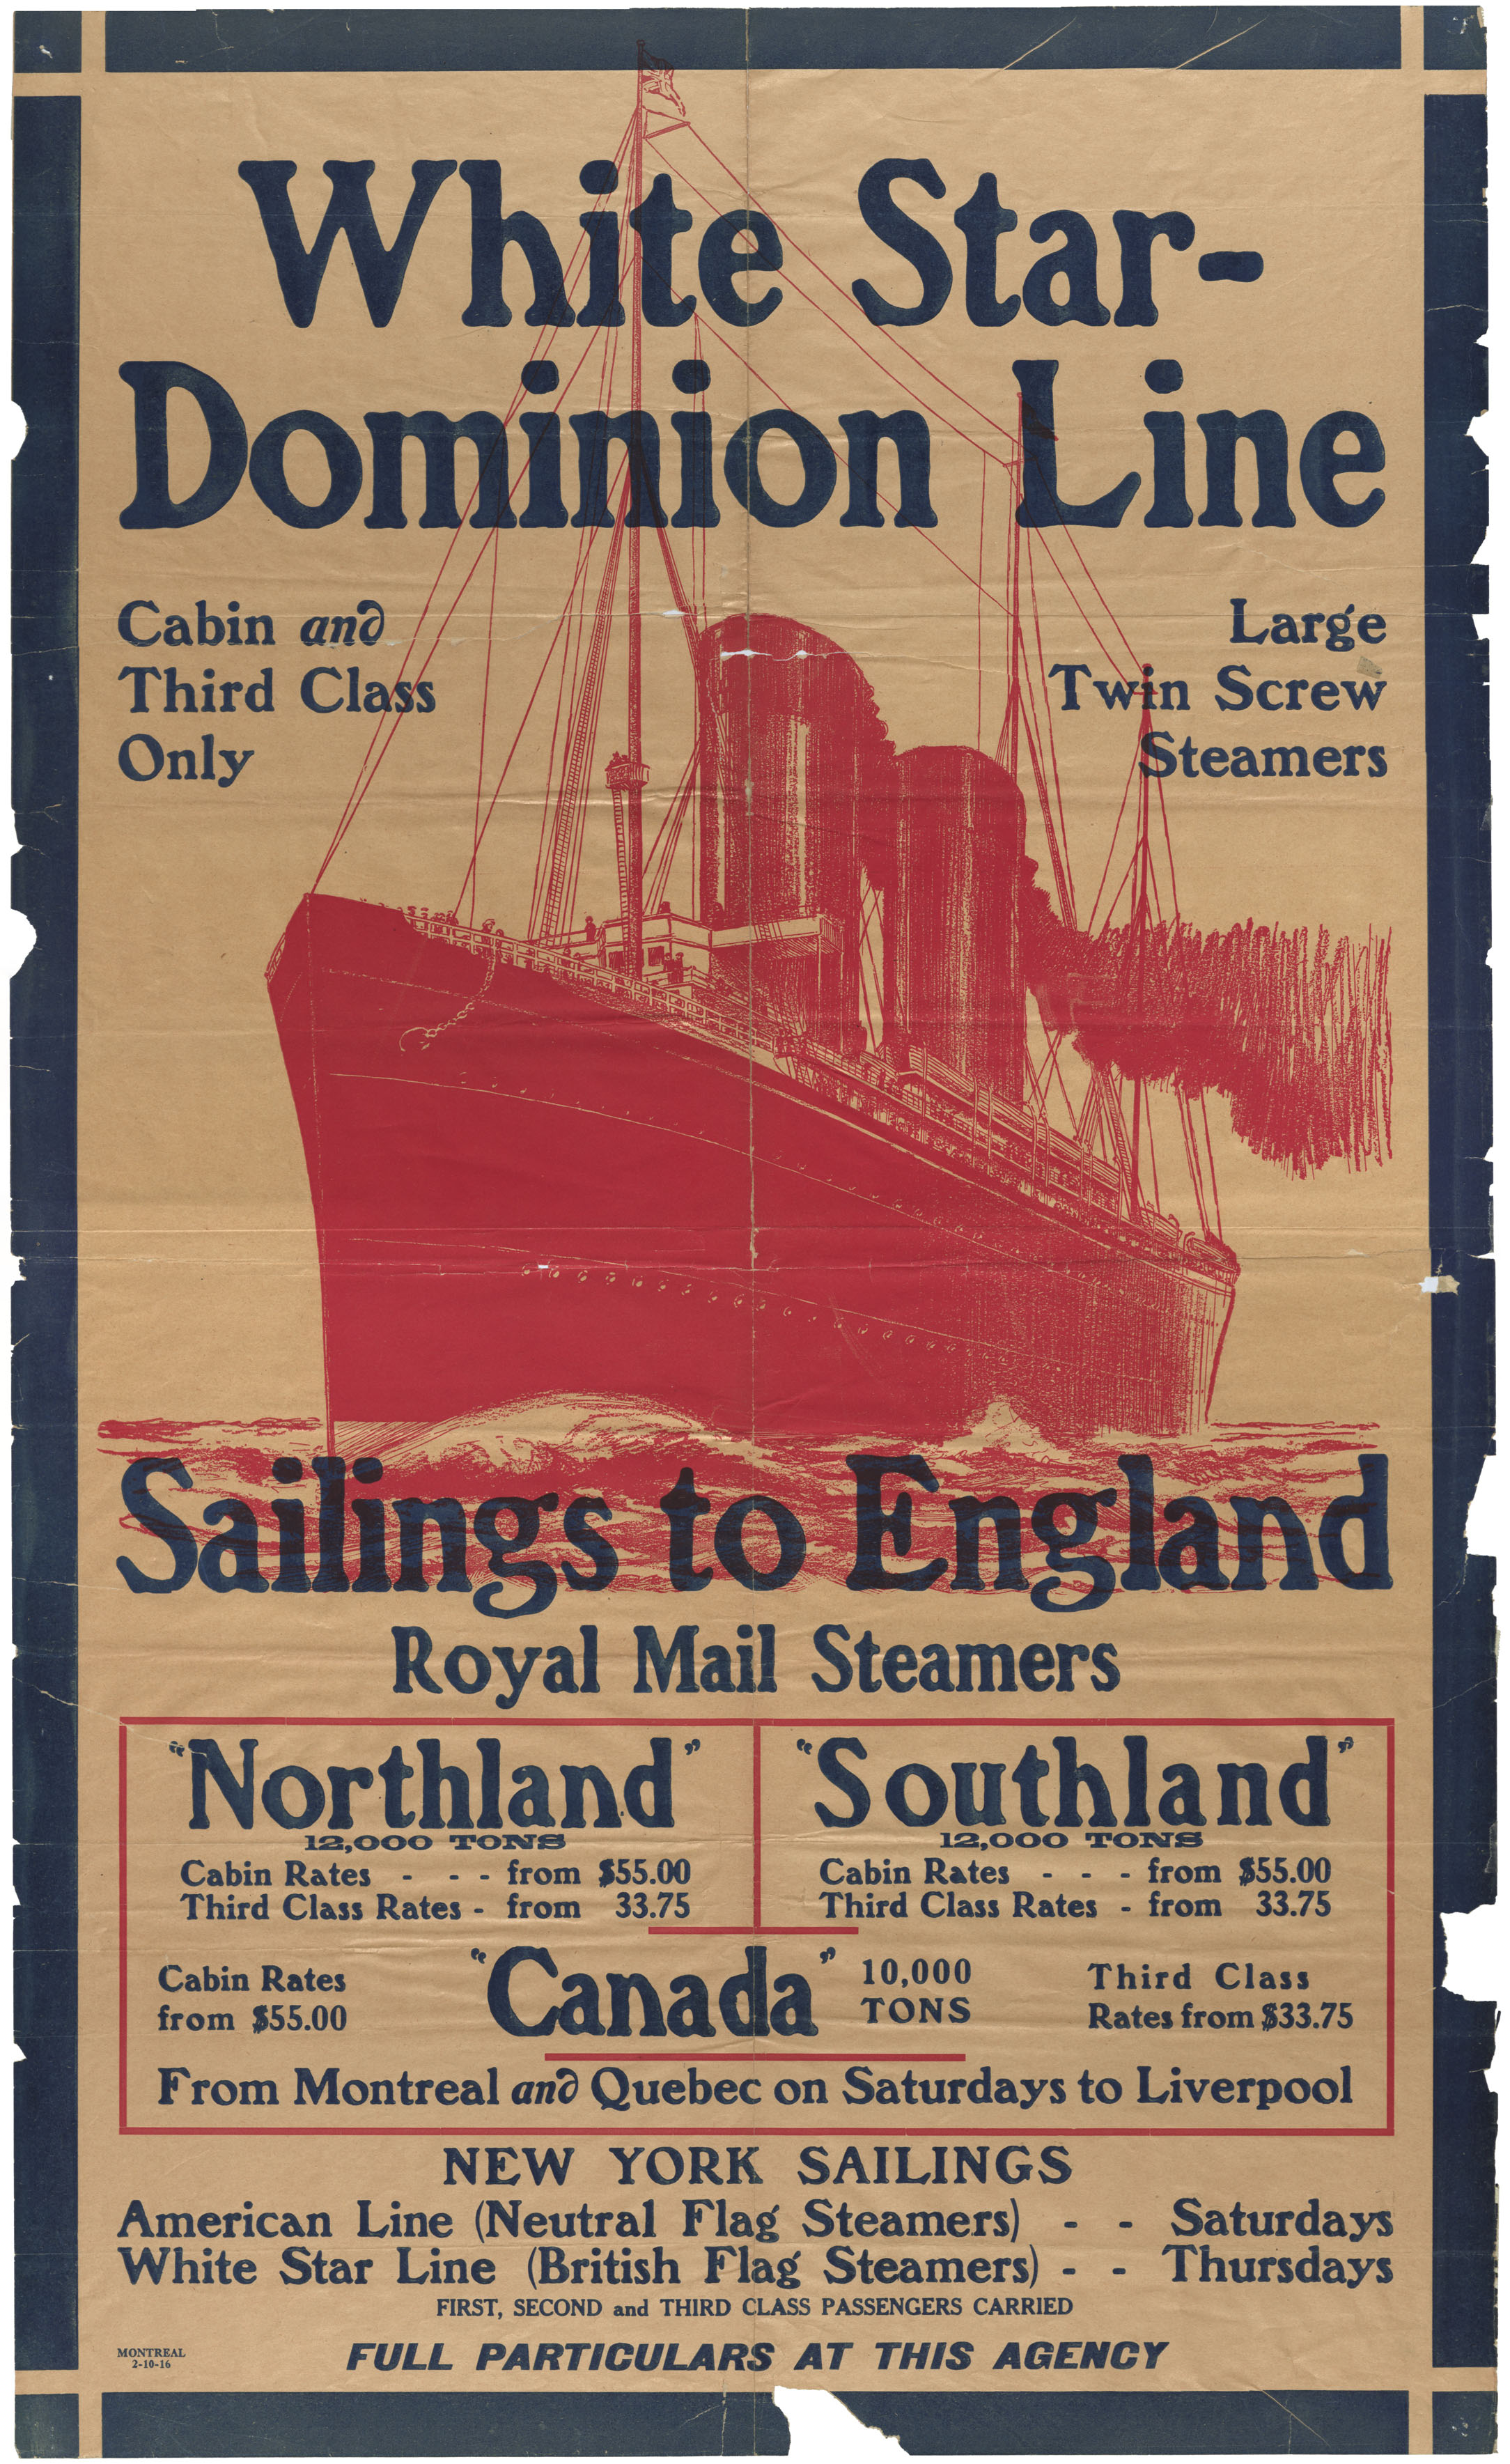 White Star-Dominion Line  -  Sailings to England -  Royal Mail Steamer